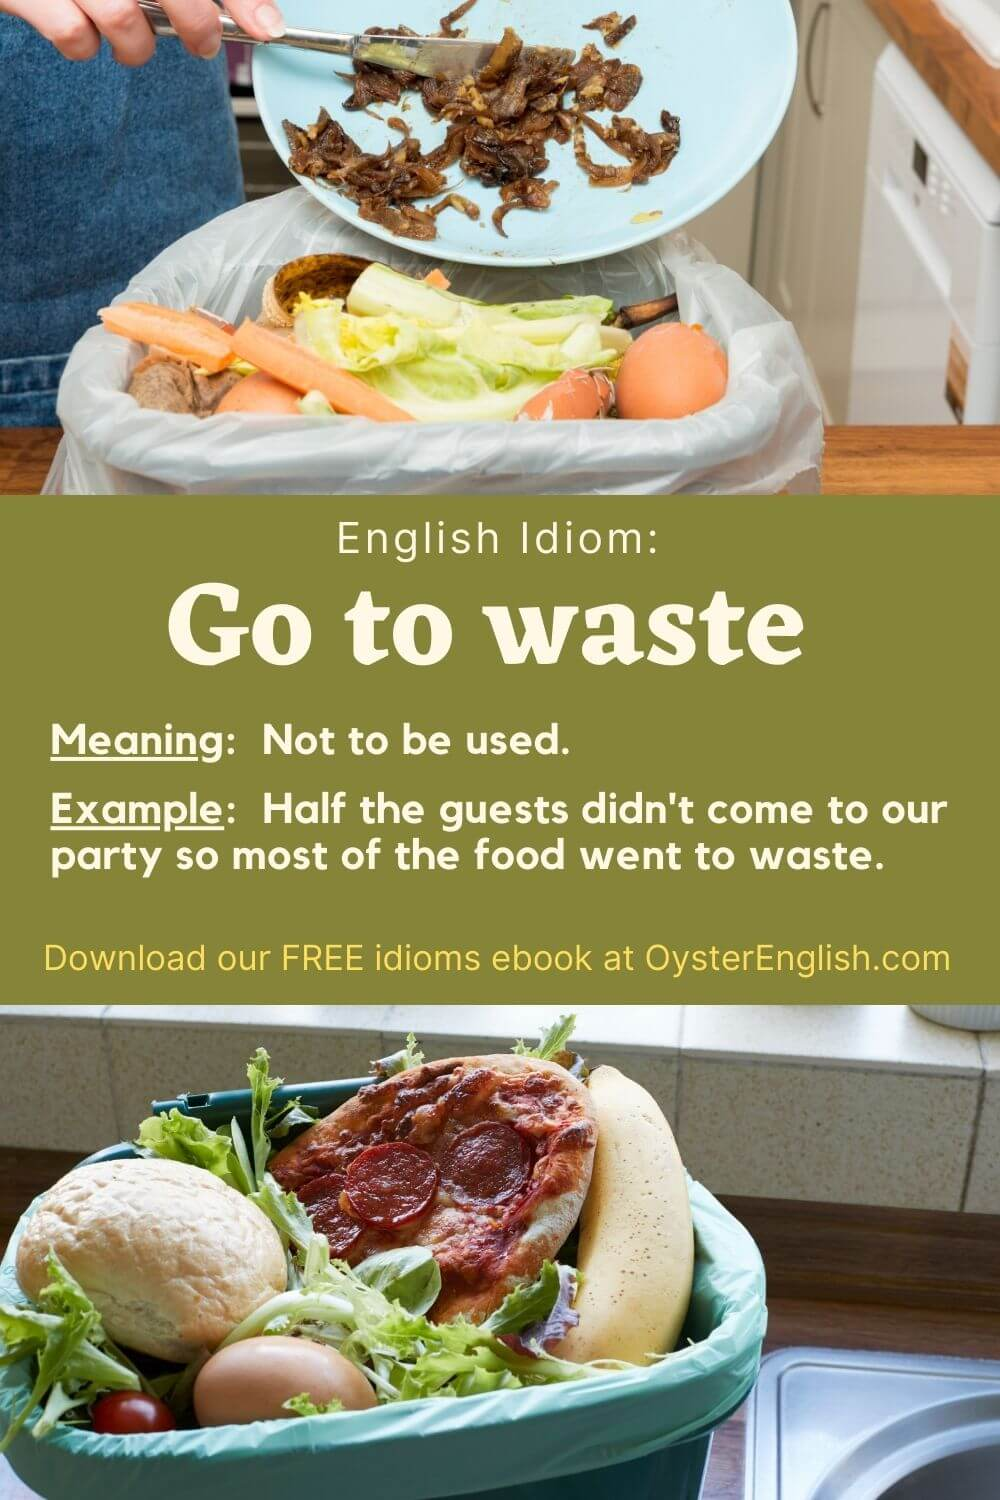 Pictures of perfectly good food in trash bins: Half the guests didn't come to our party so most of the food went to waste.